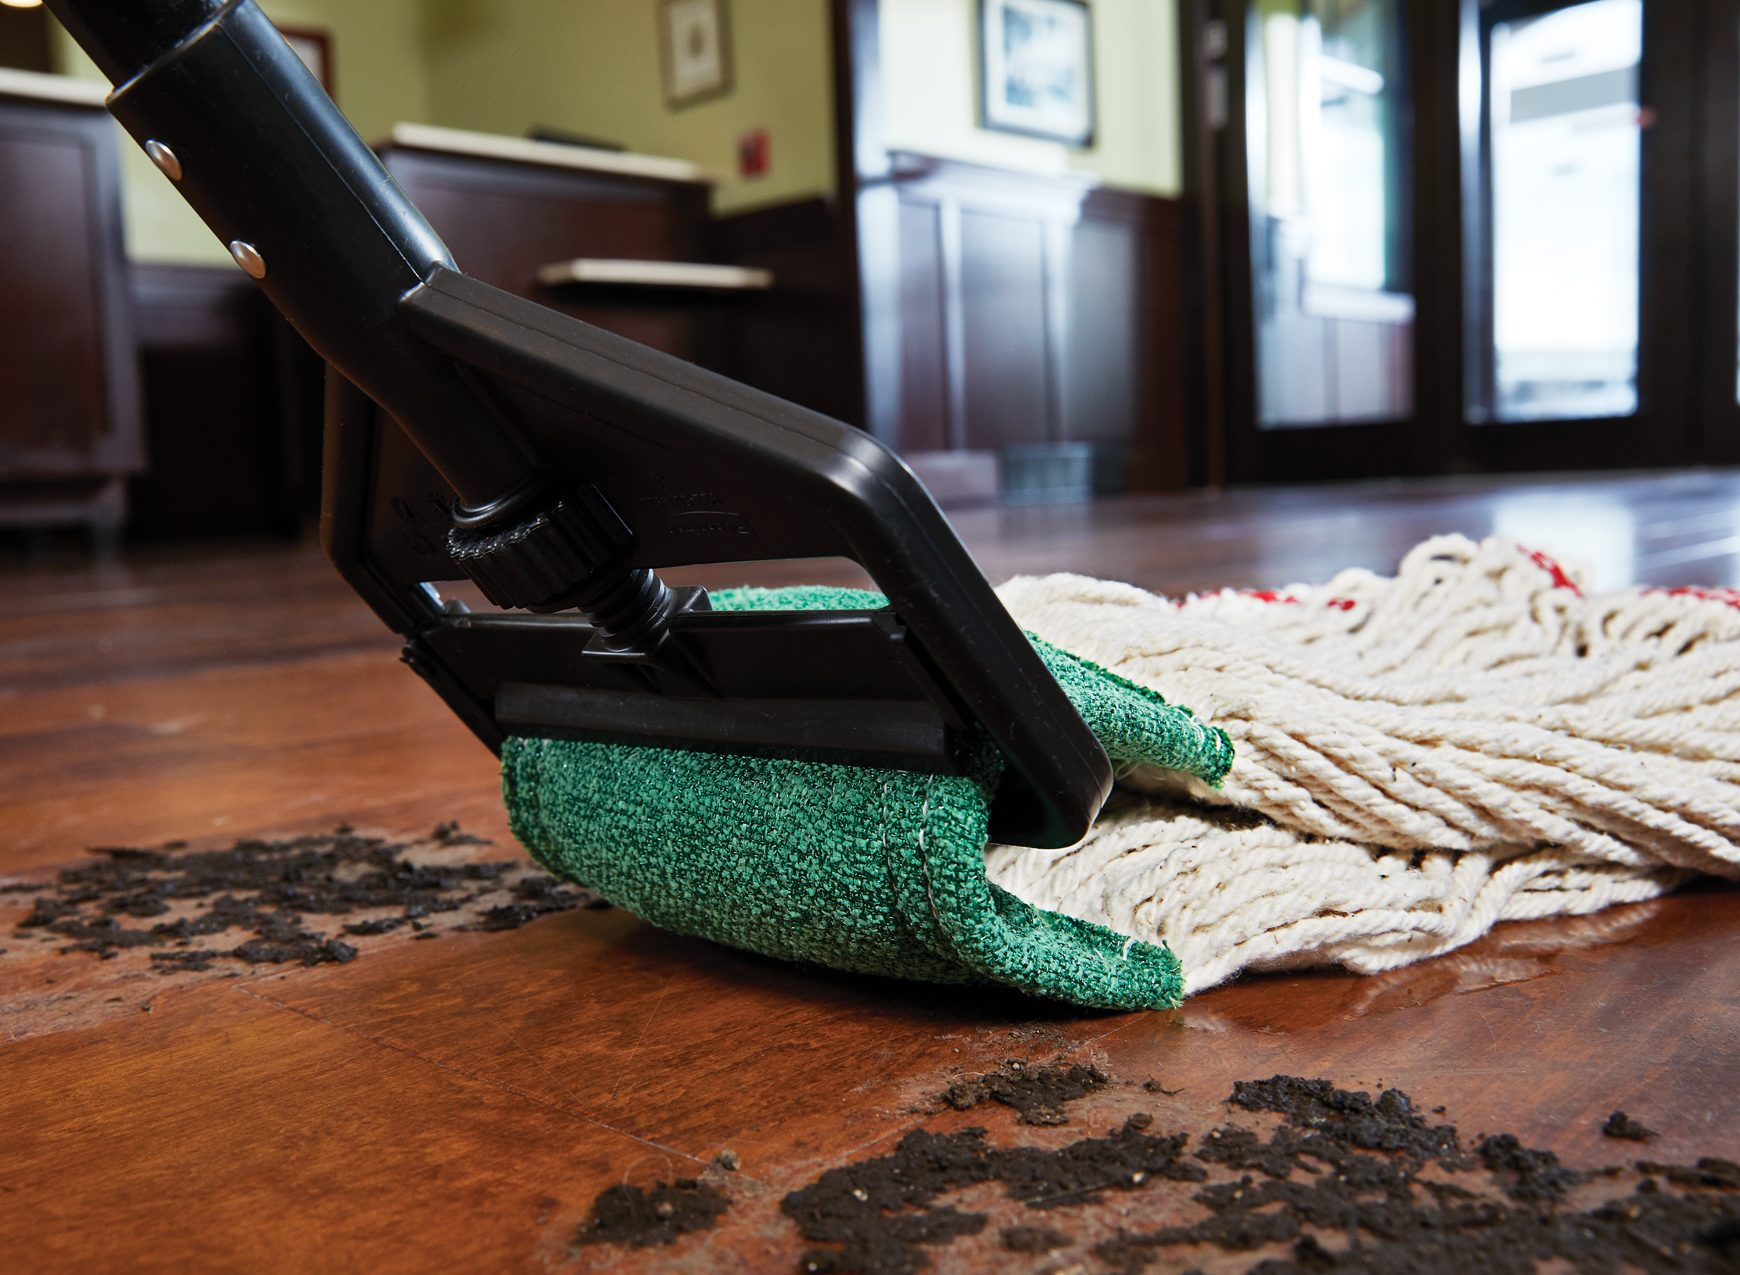 Wet mop with black handle and built-in green scrubbing pag